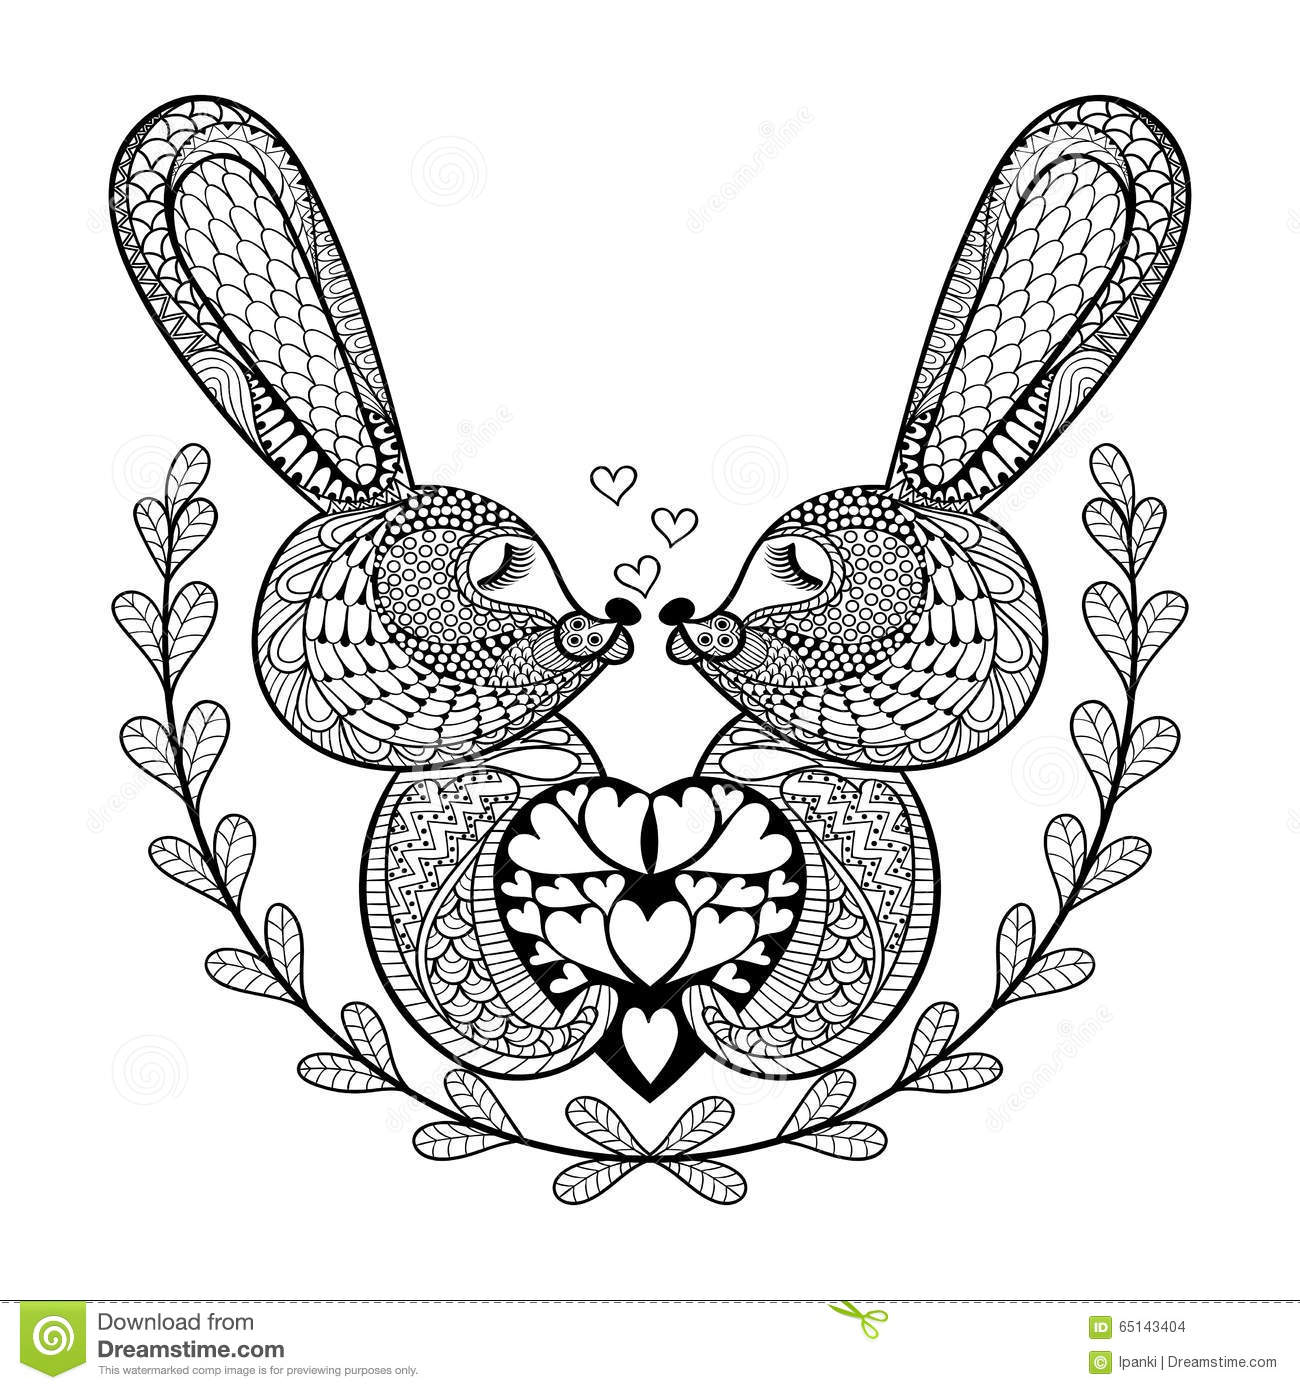 Hand Drawn Lovely Rabbit For St. Valentine's Day In Doodle ...